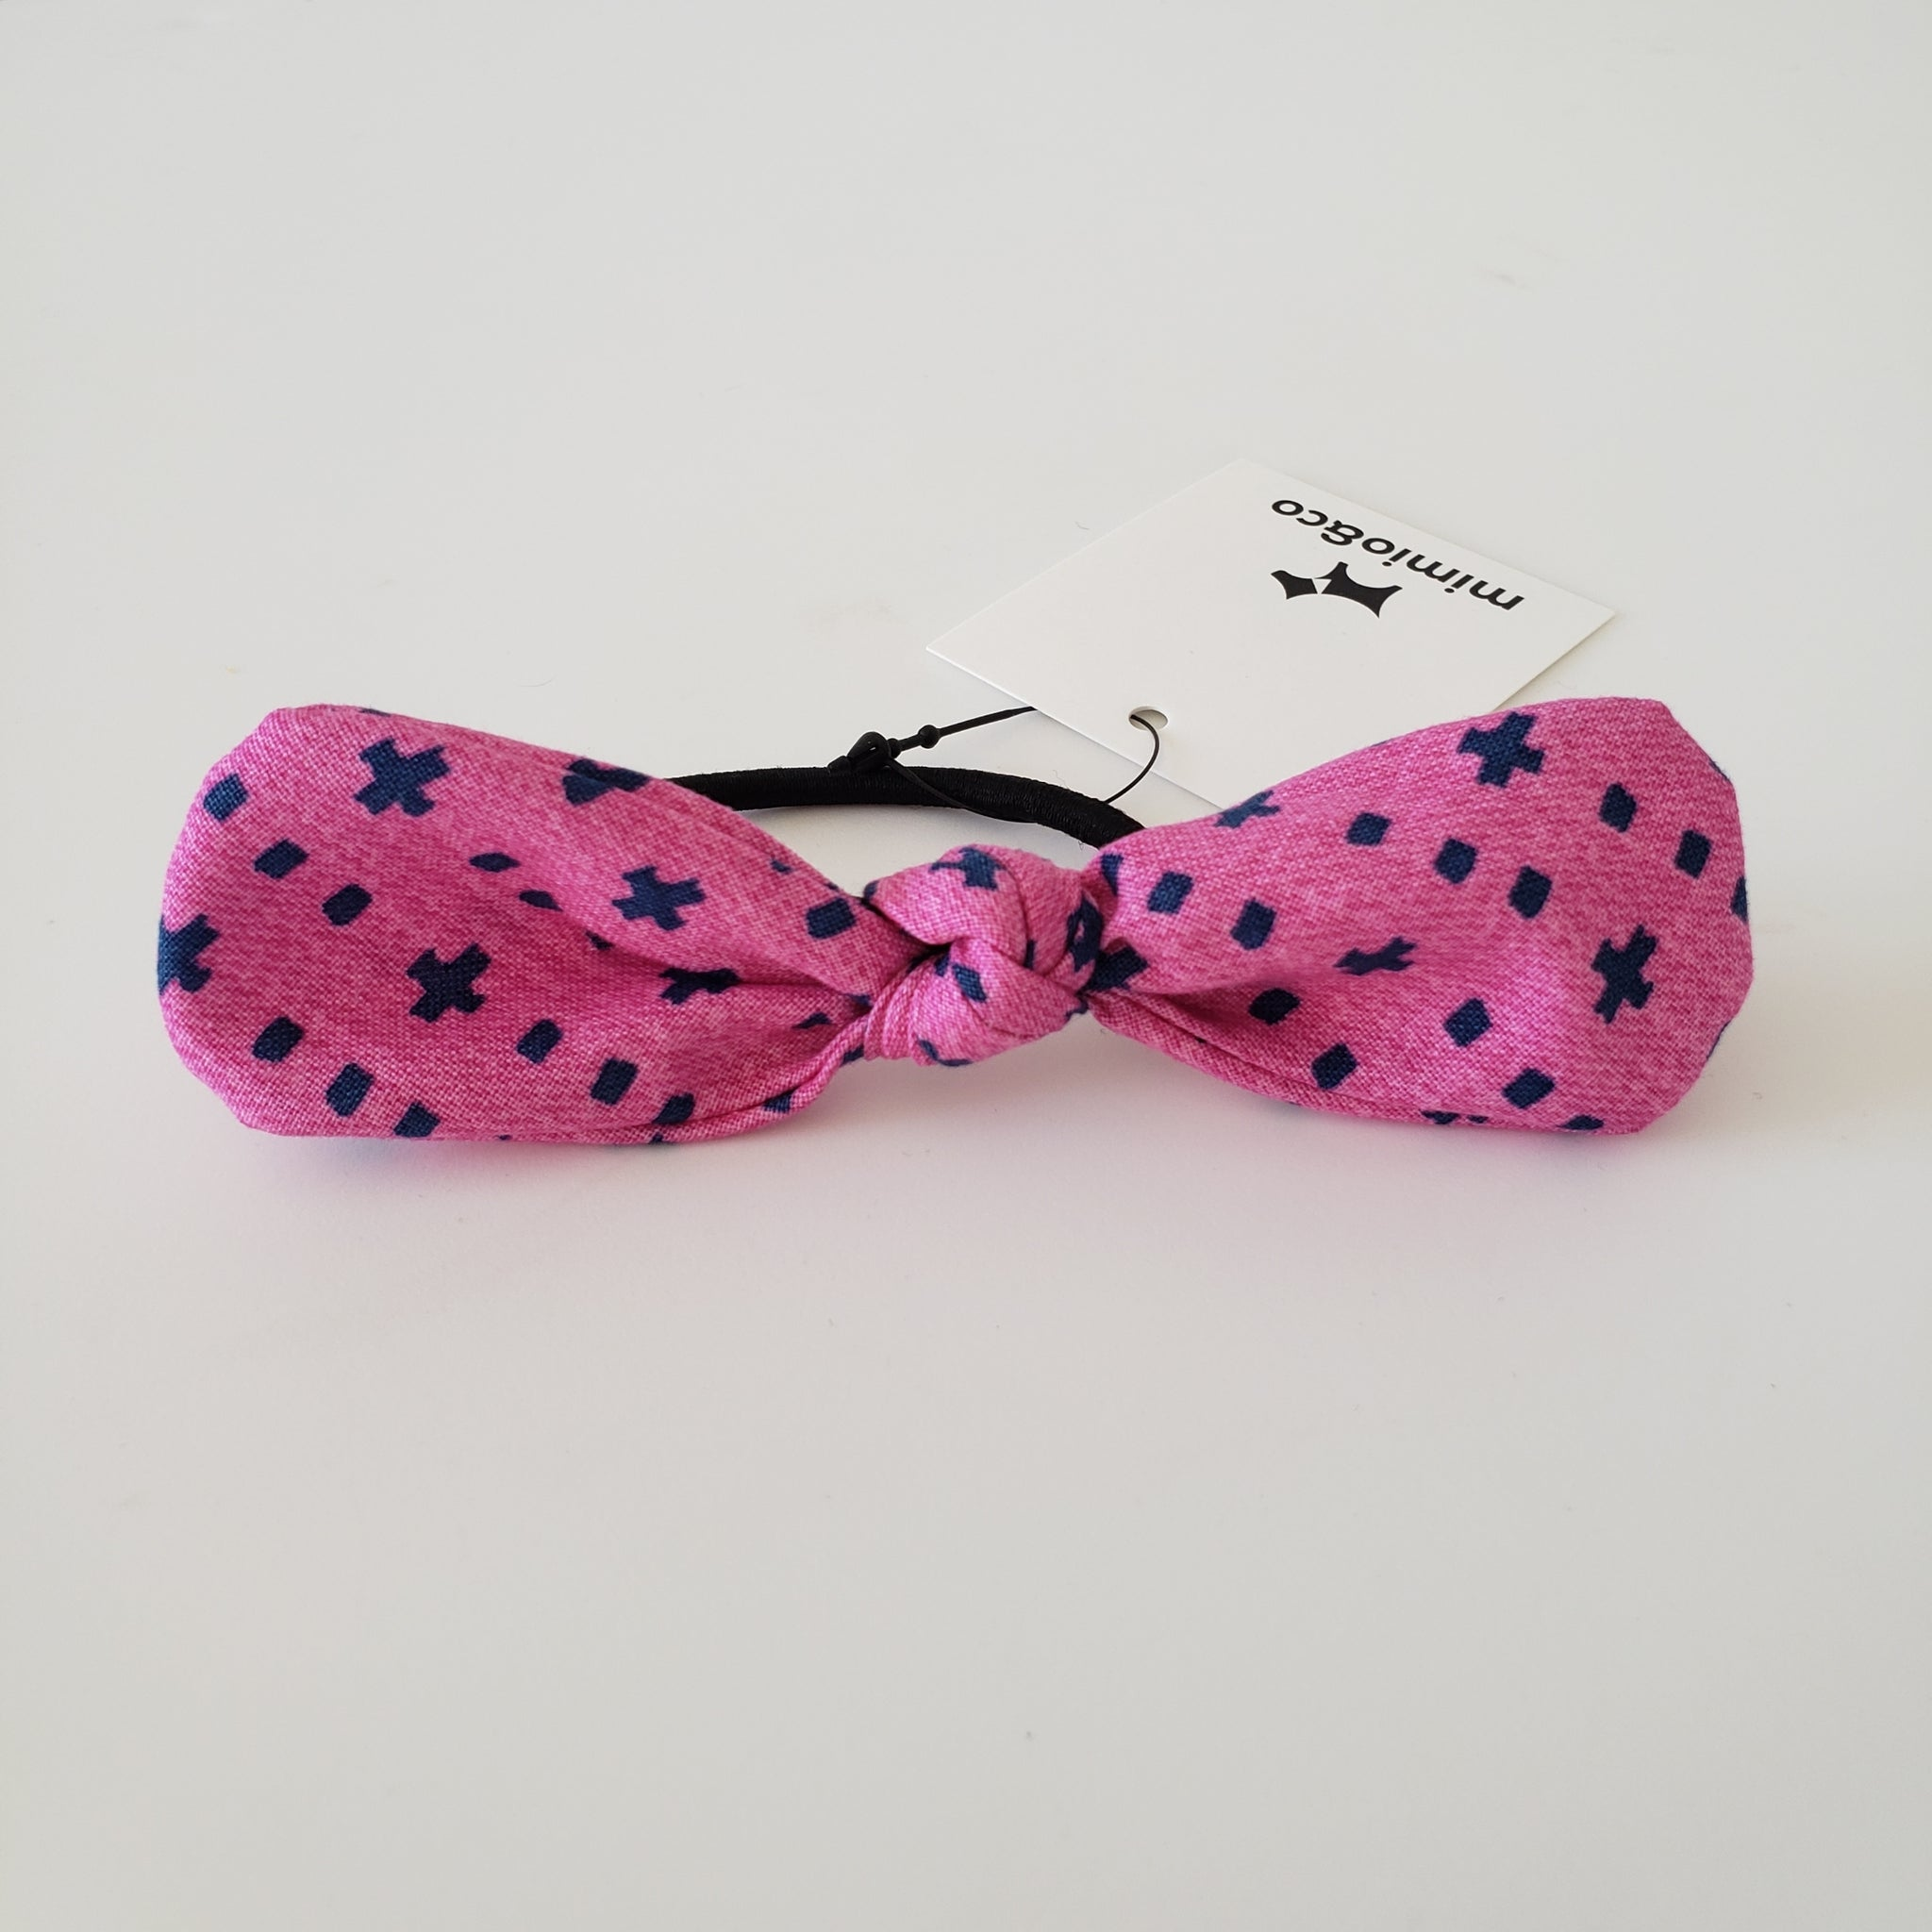 PET MOM'S BOW HAIR TIE - PINK XO